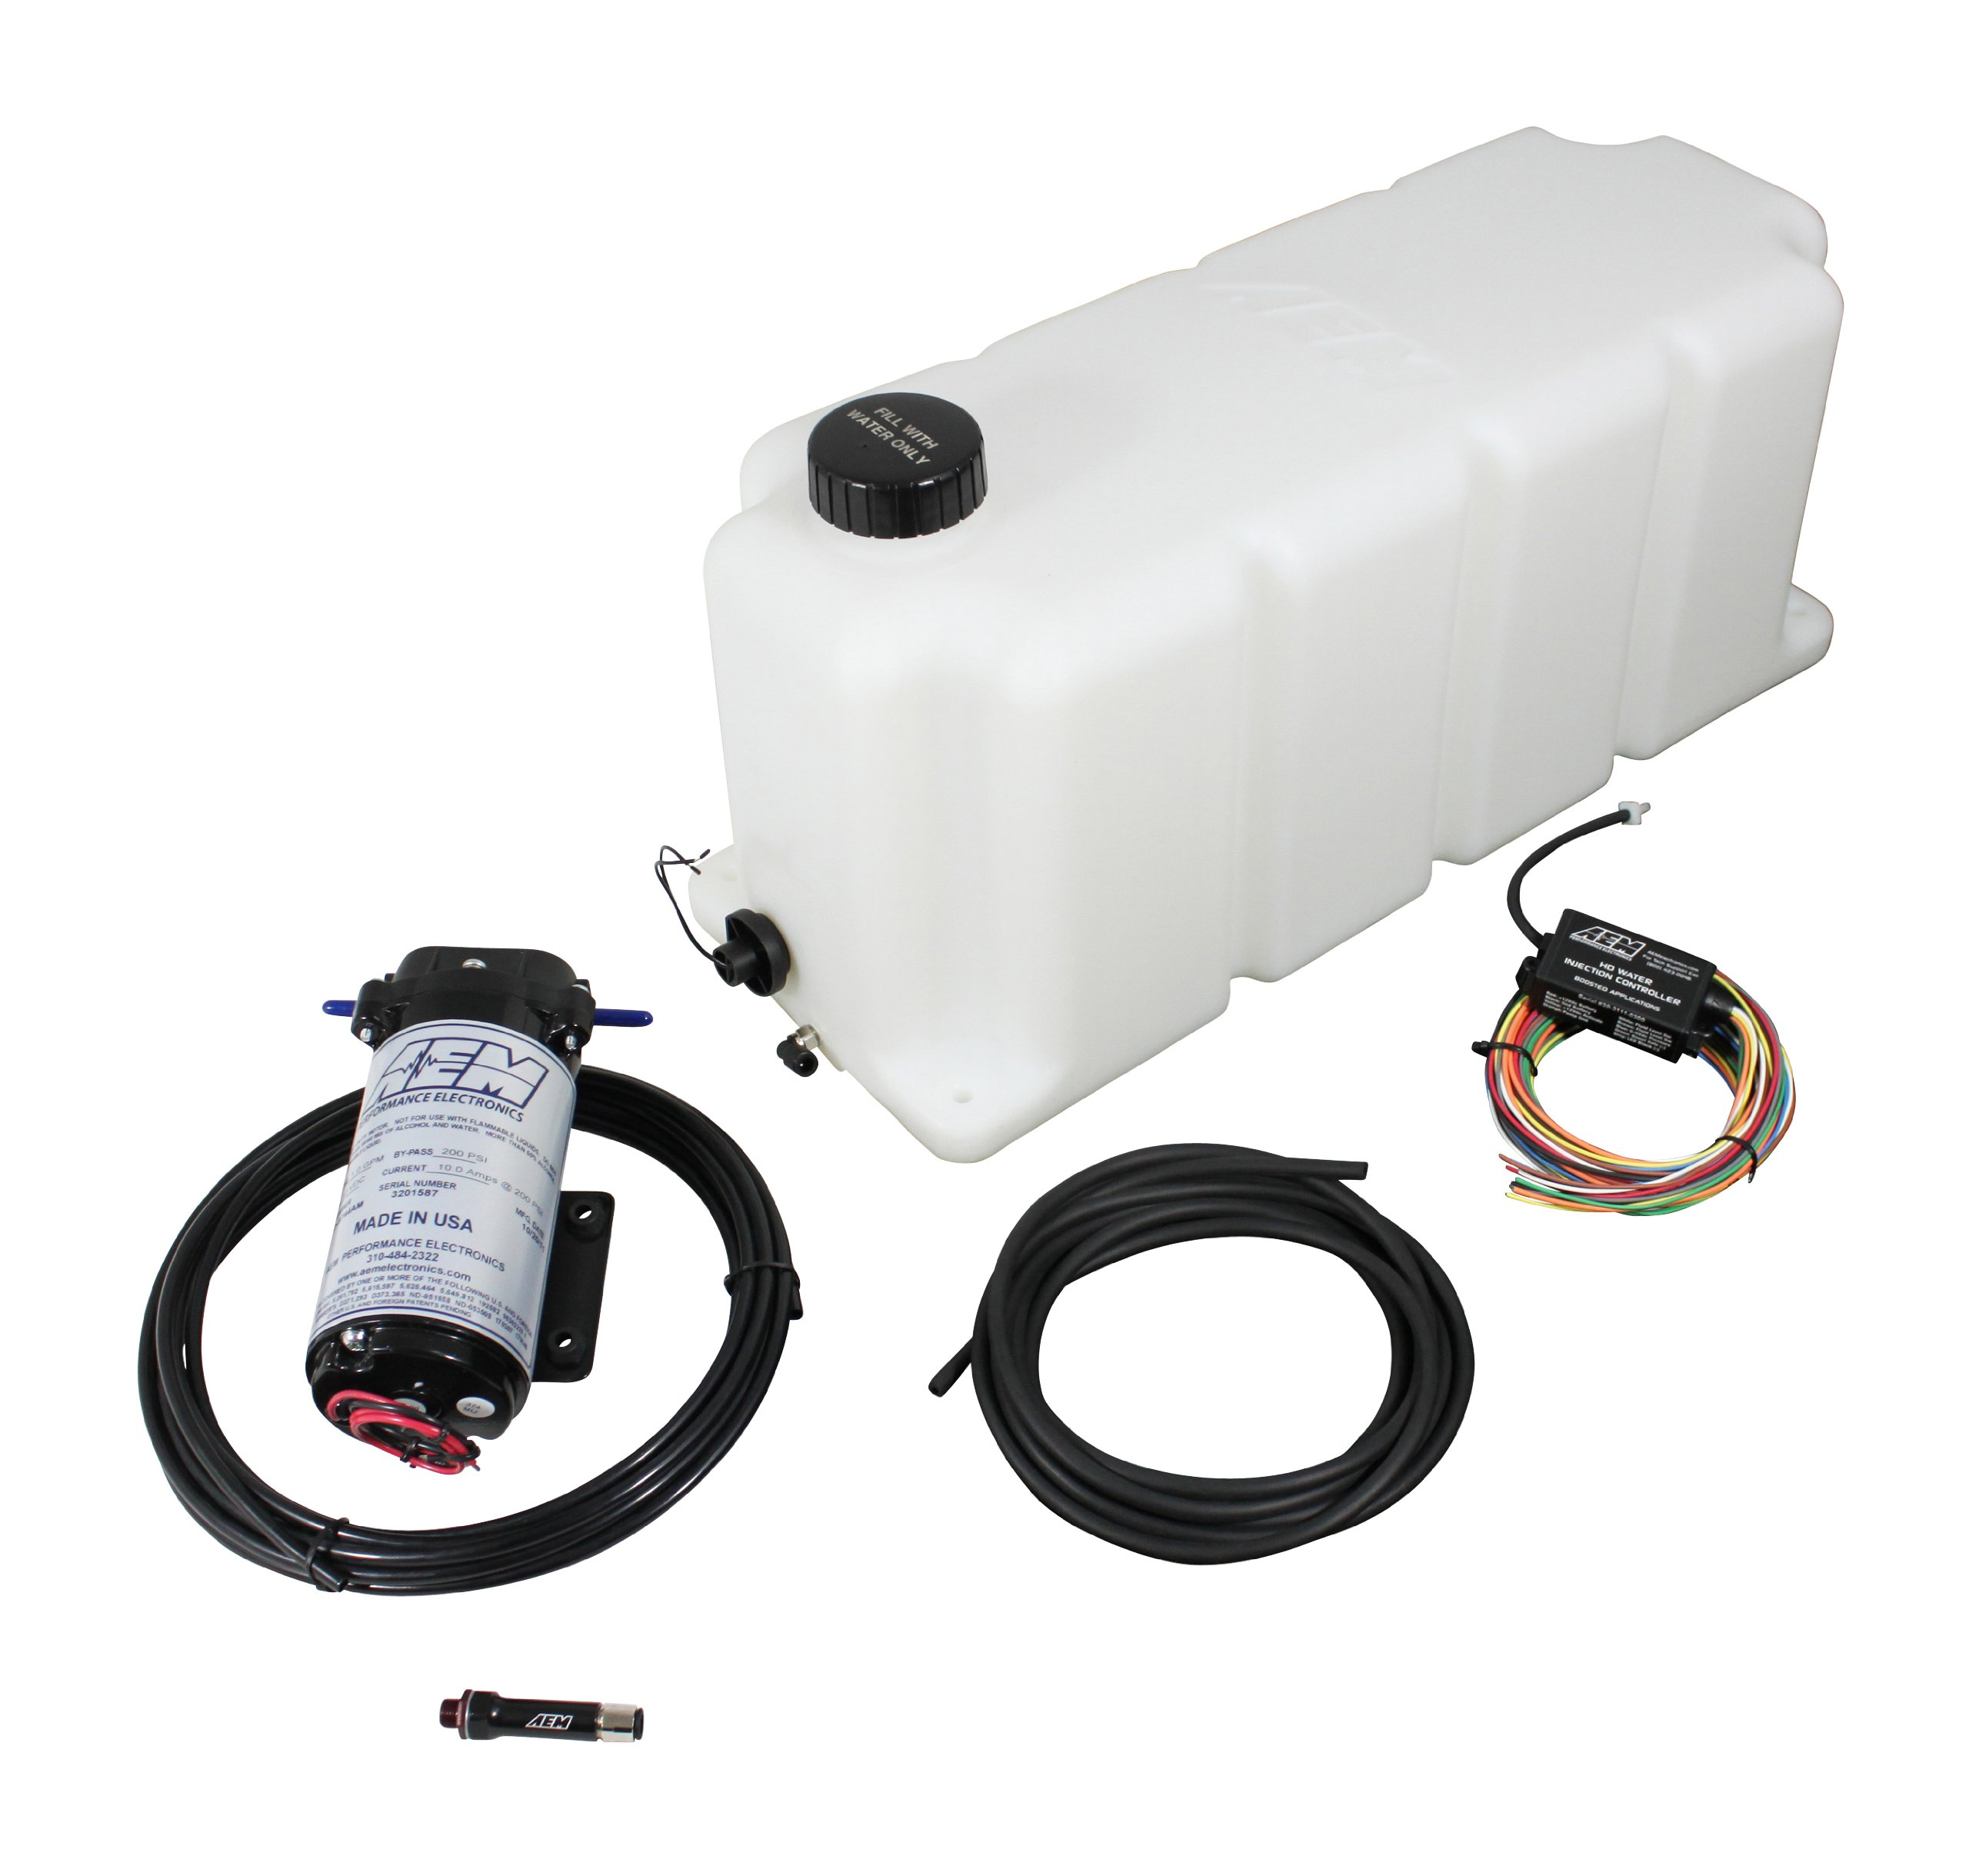 AEM 30-3111 50-State Water Injection Kit for Turbo Diesel Engines by AEM